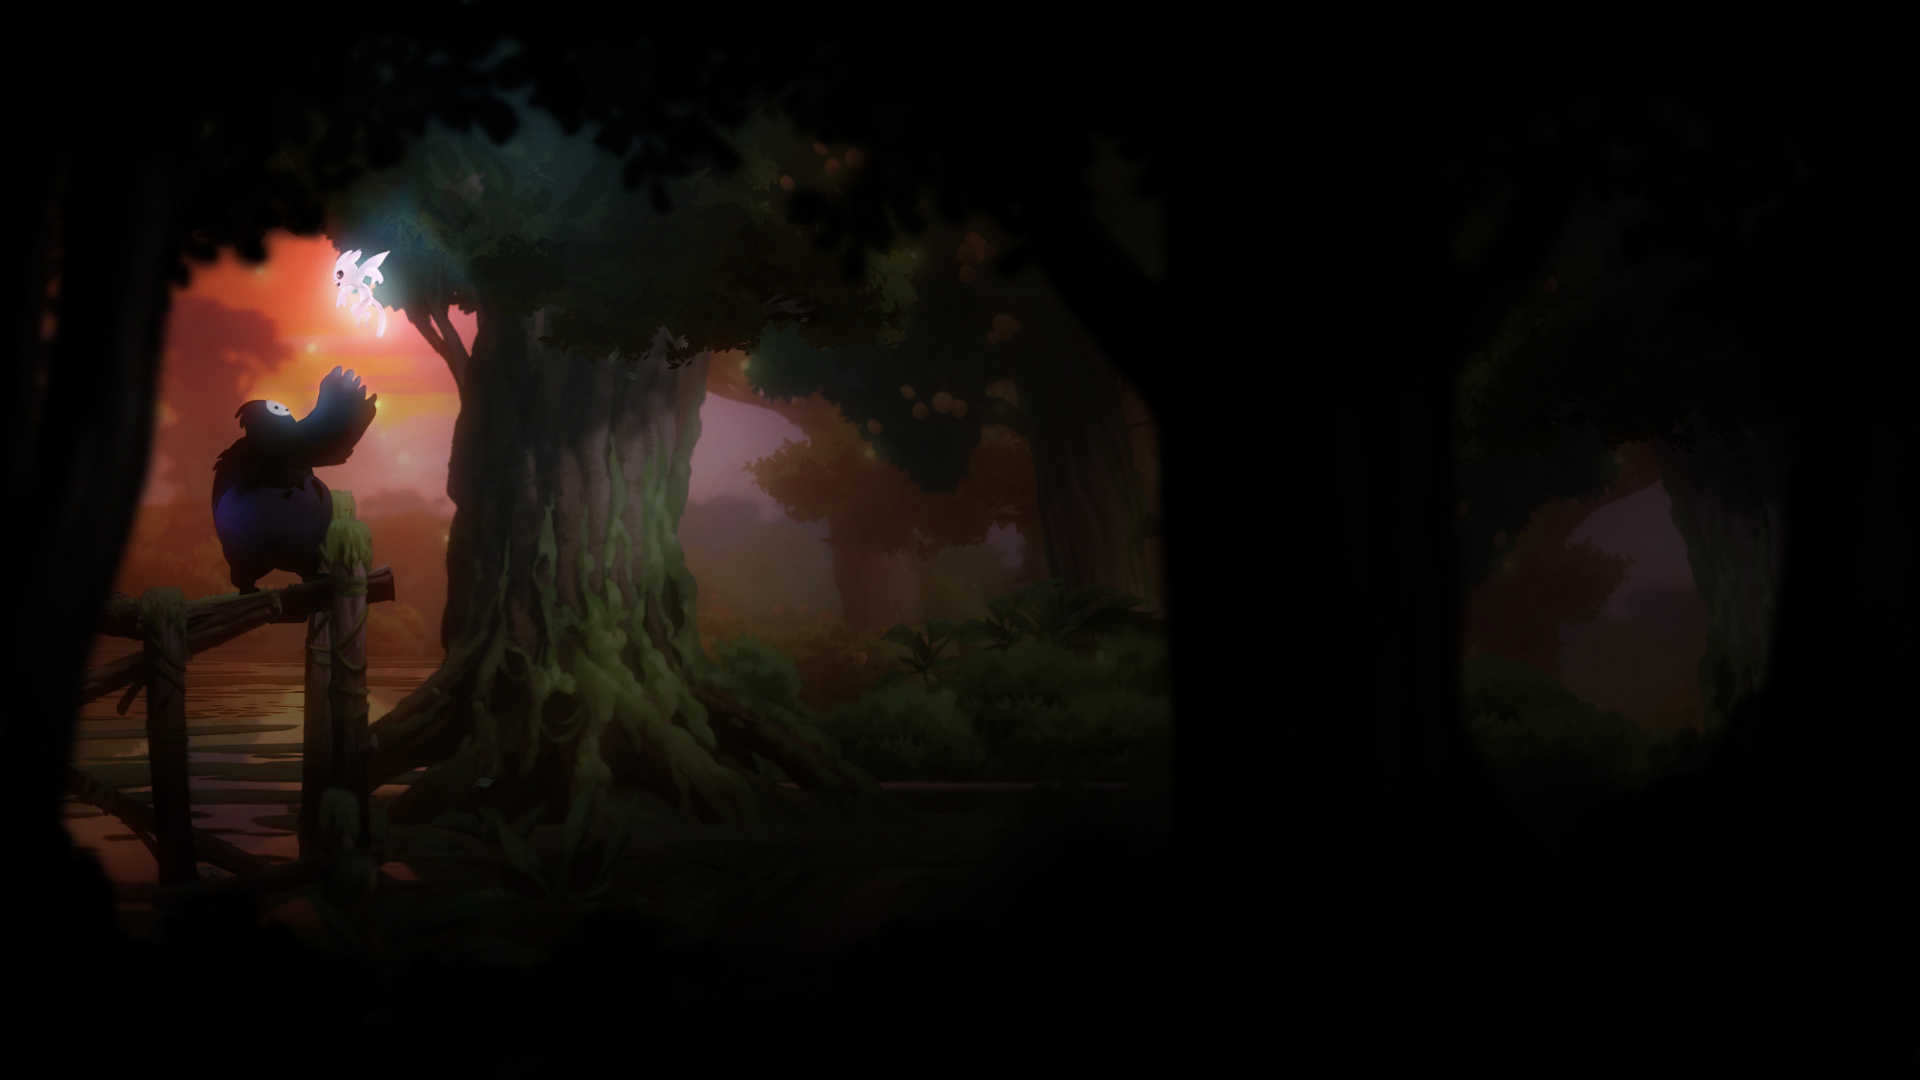 Ori And The Blind Forest Hd Wallpaper: Ori And The Blind Forest HD Wallpaper